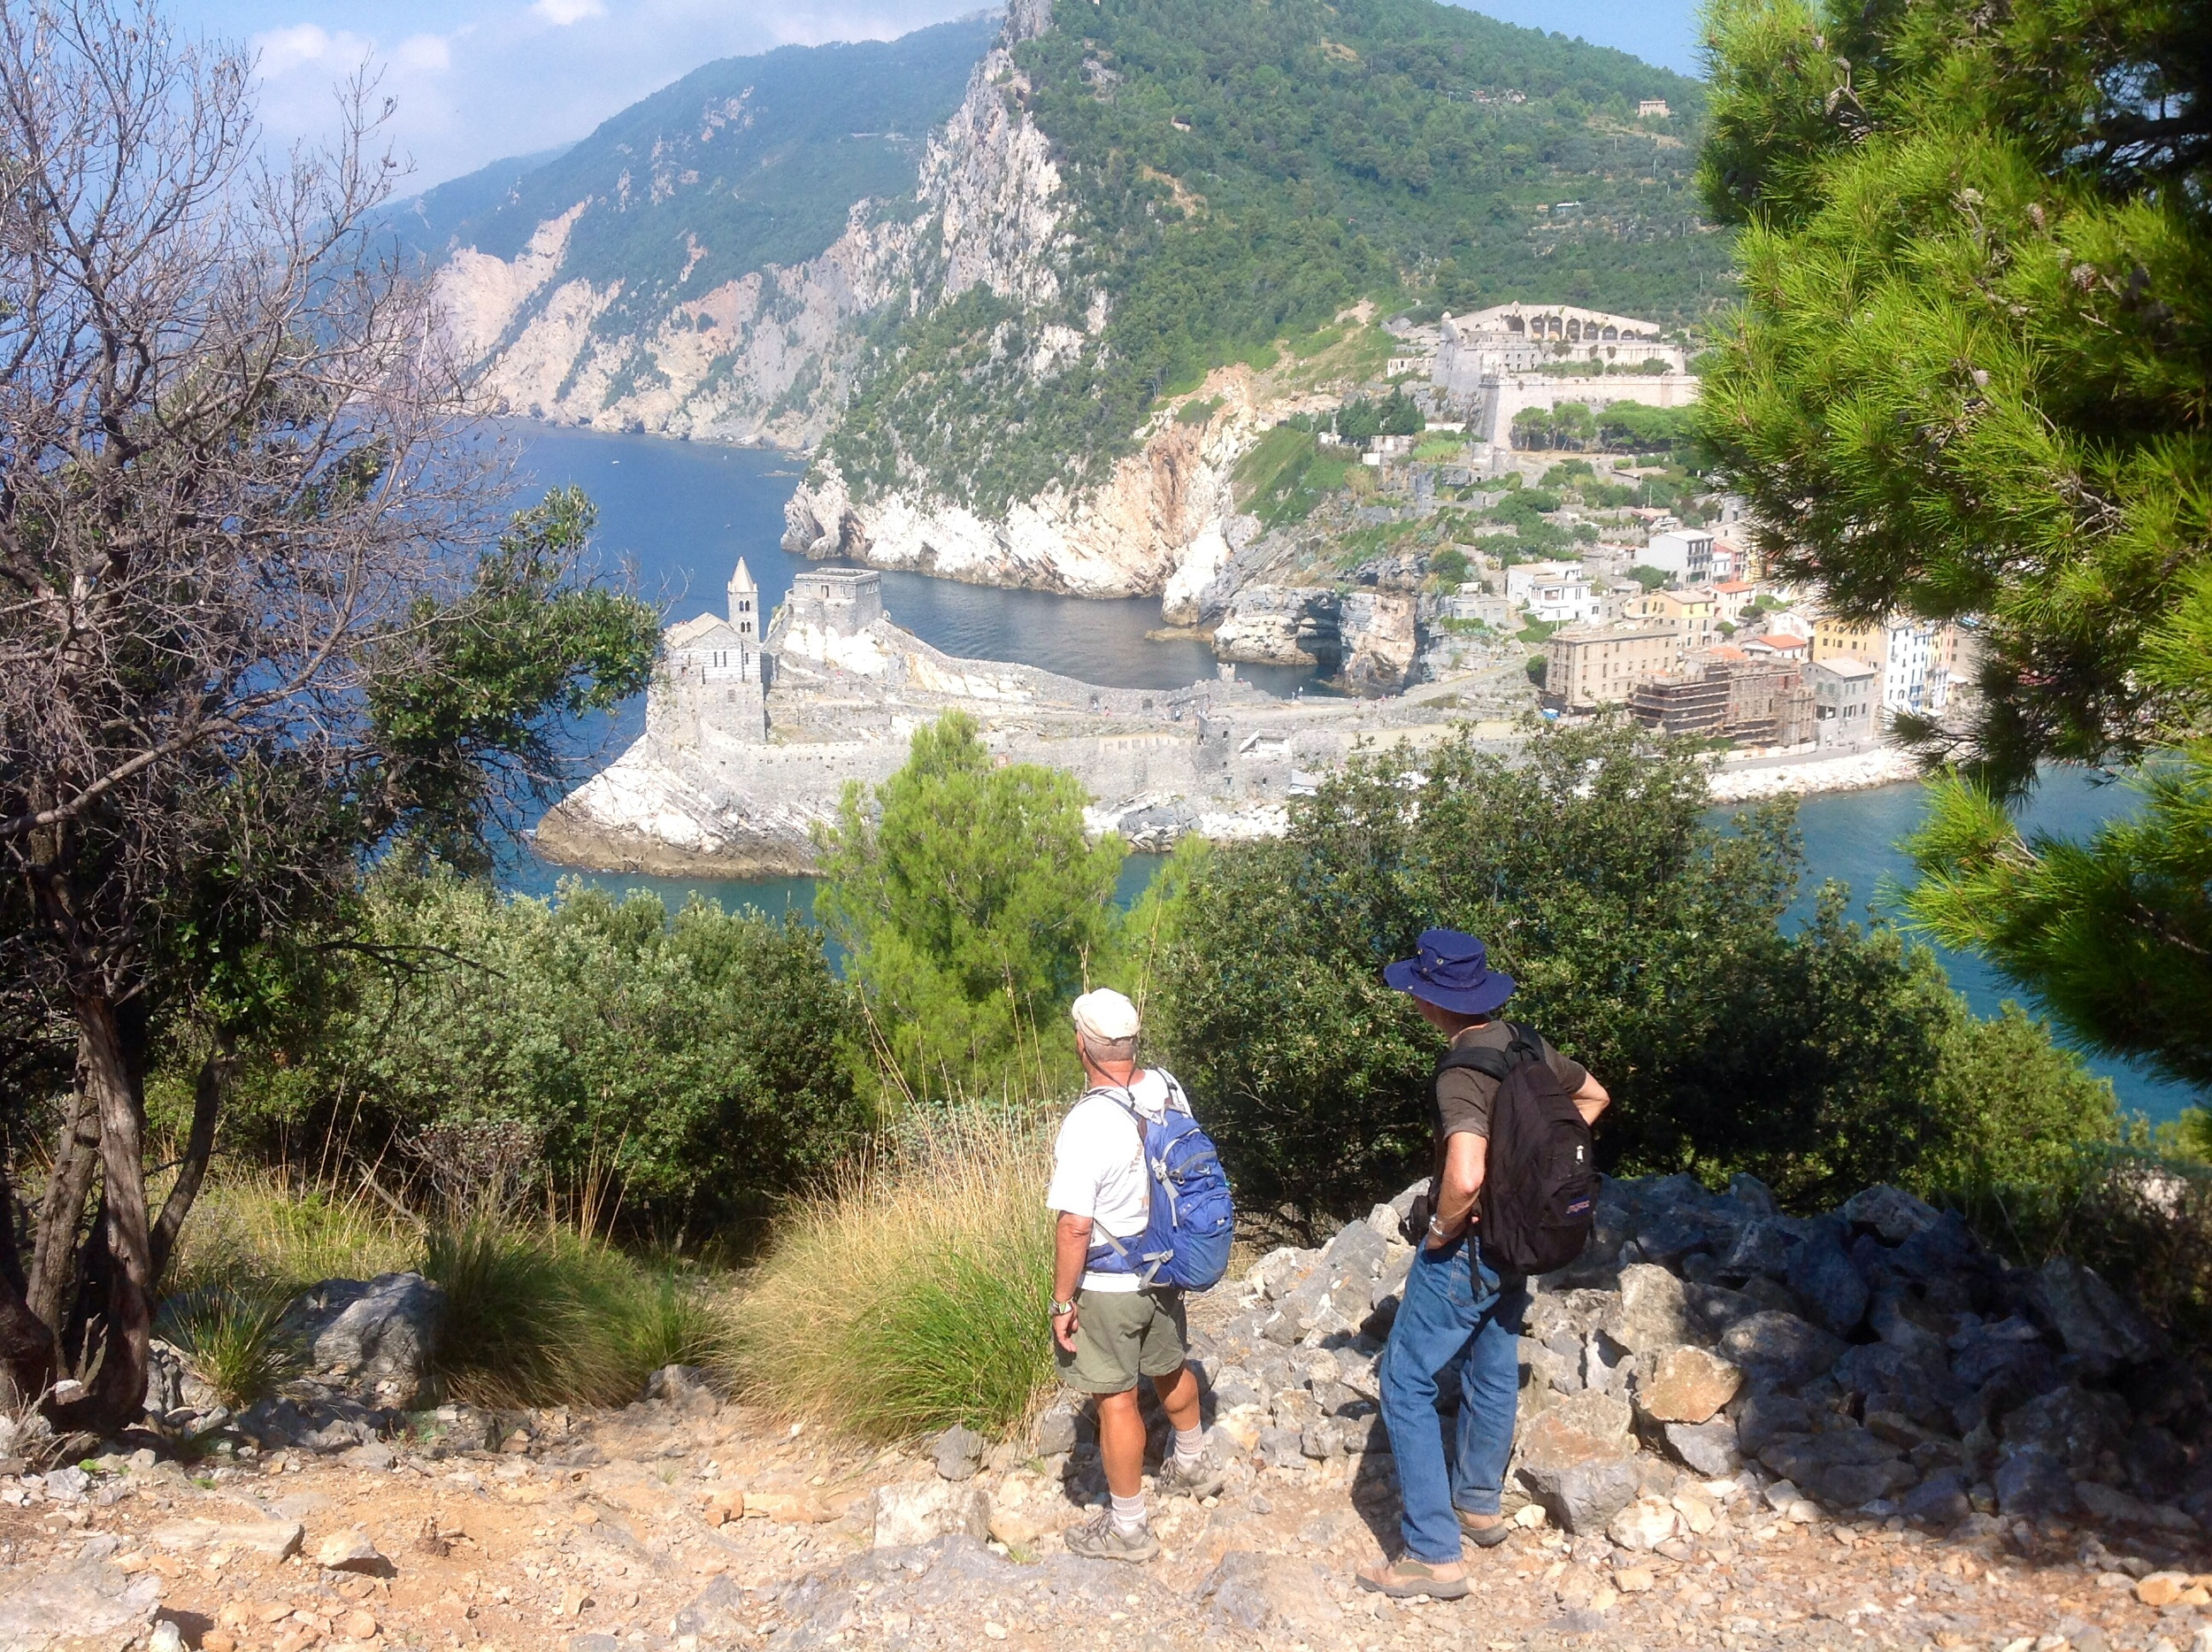 View to Portovenere and Doria Castle